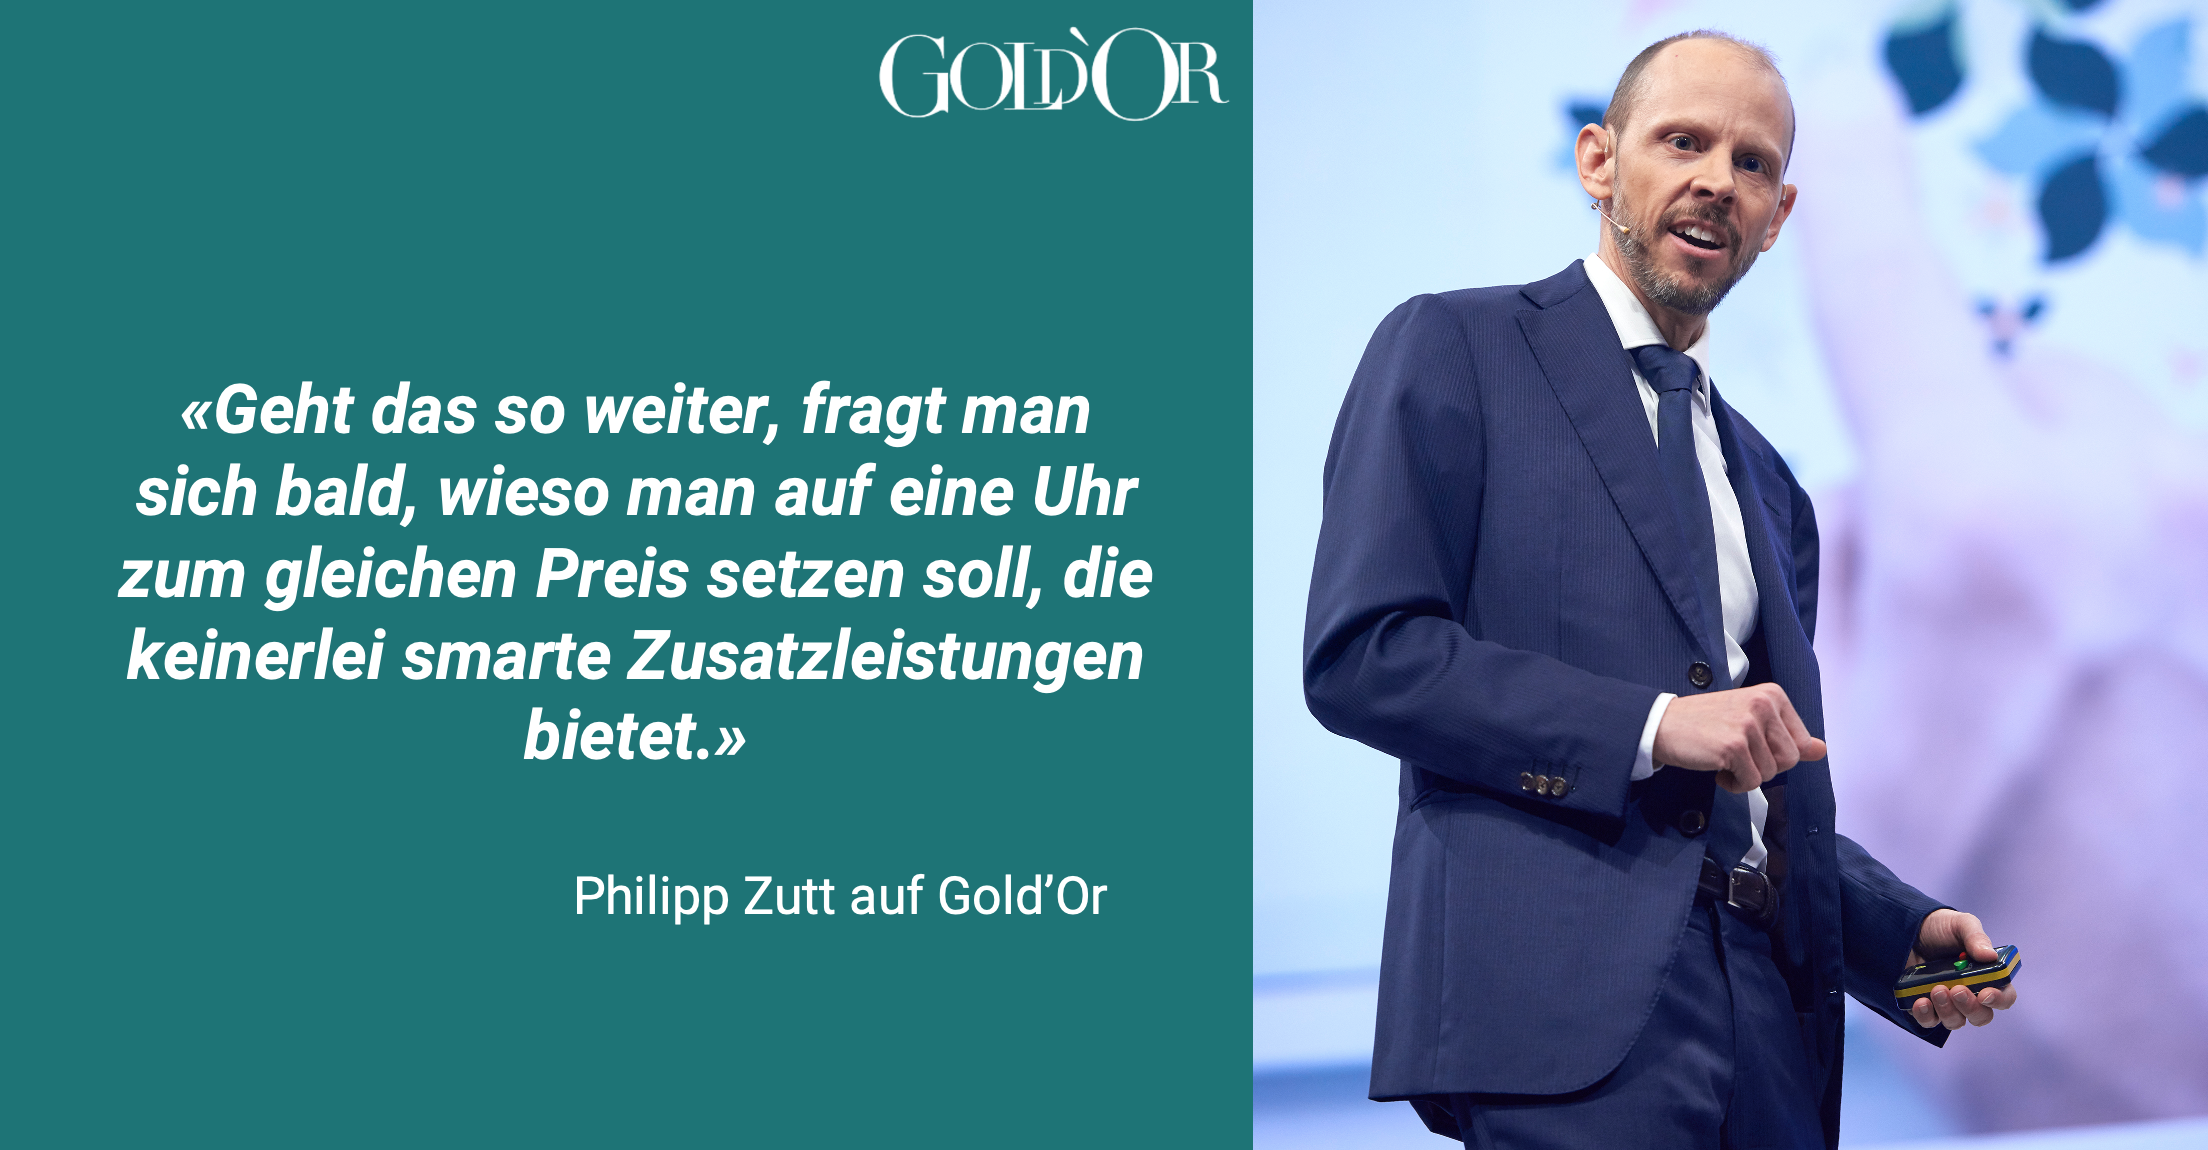 Interview von Philipp Zutt mit Gold'Or